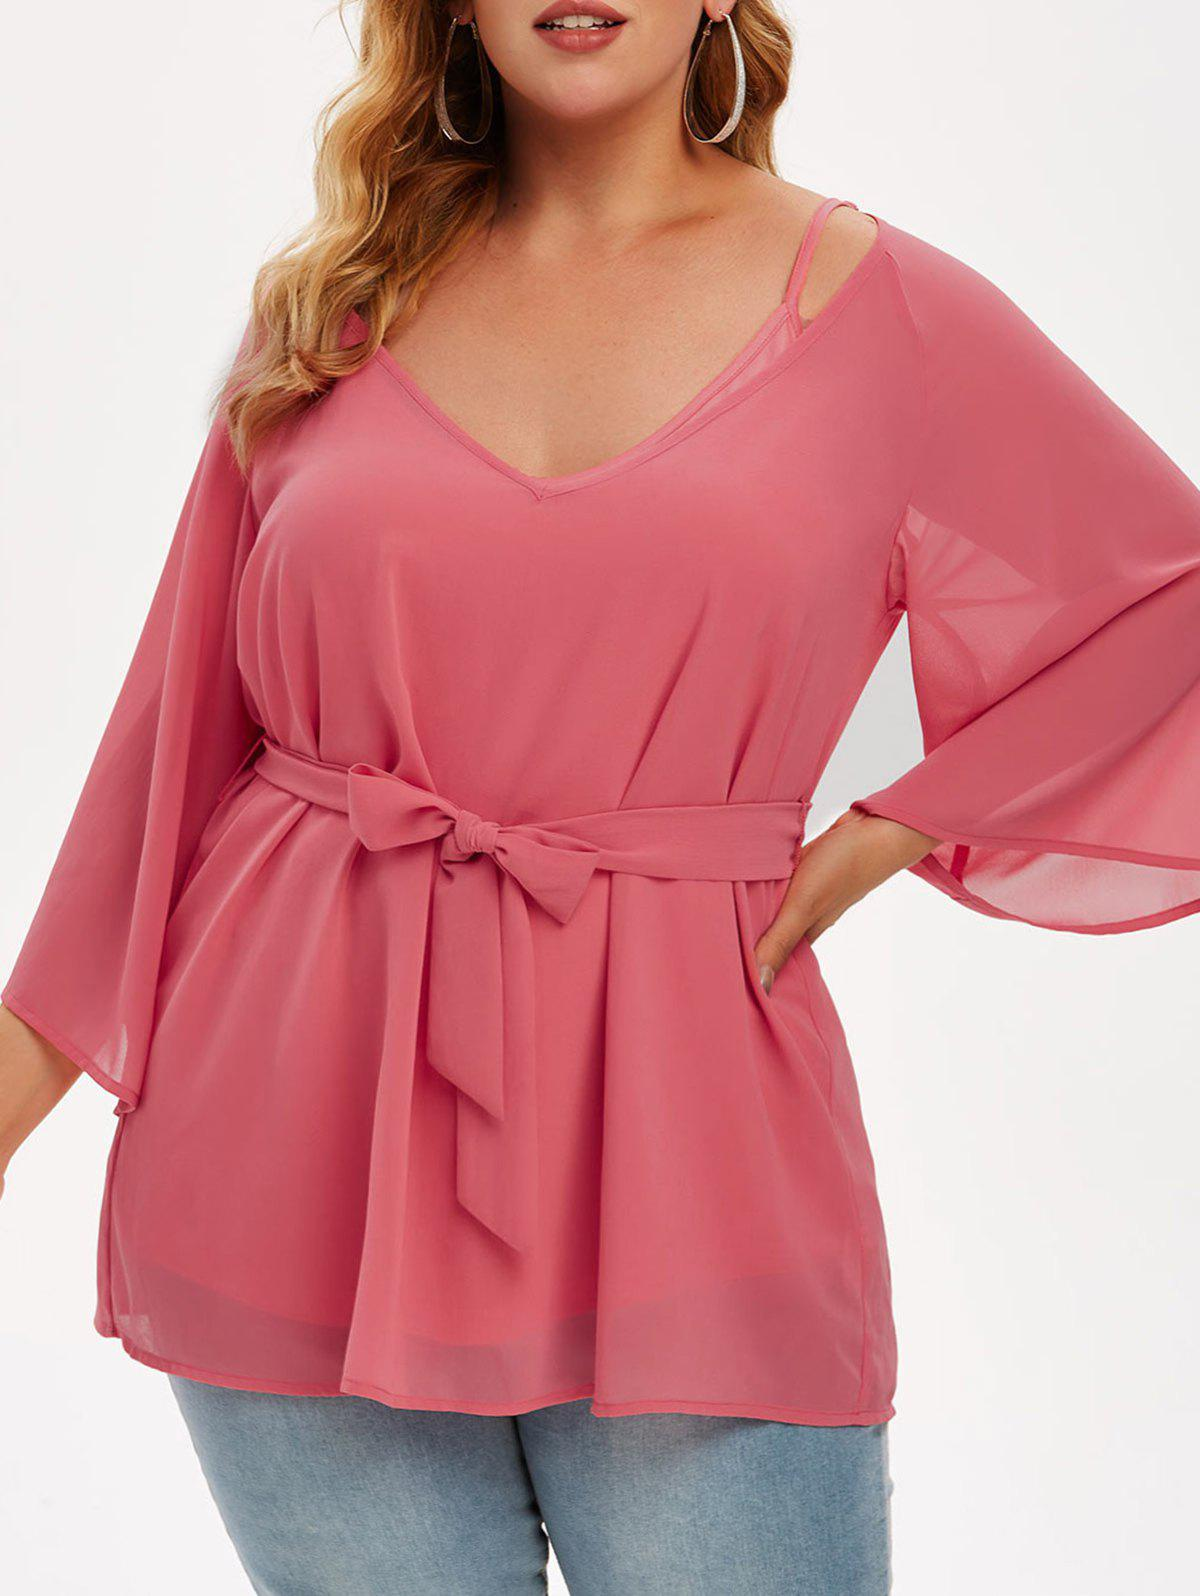 Chic Plus Size Cami Top And Chiffon Belted Blouse Set